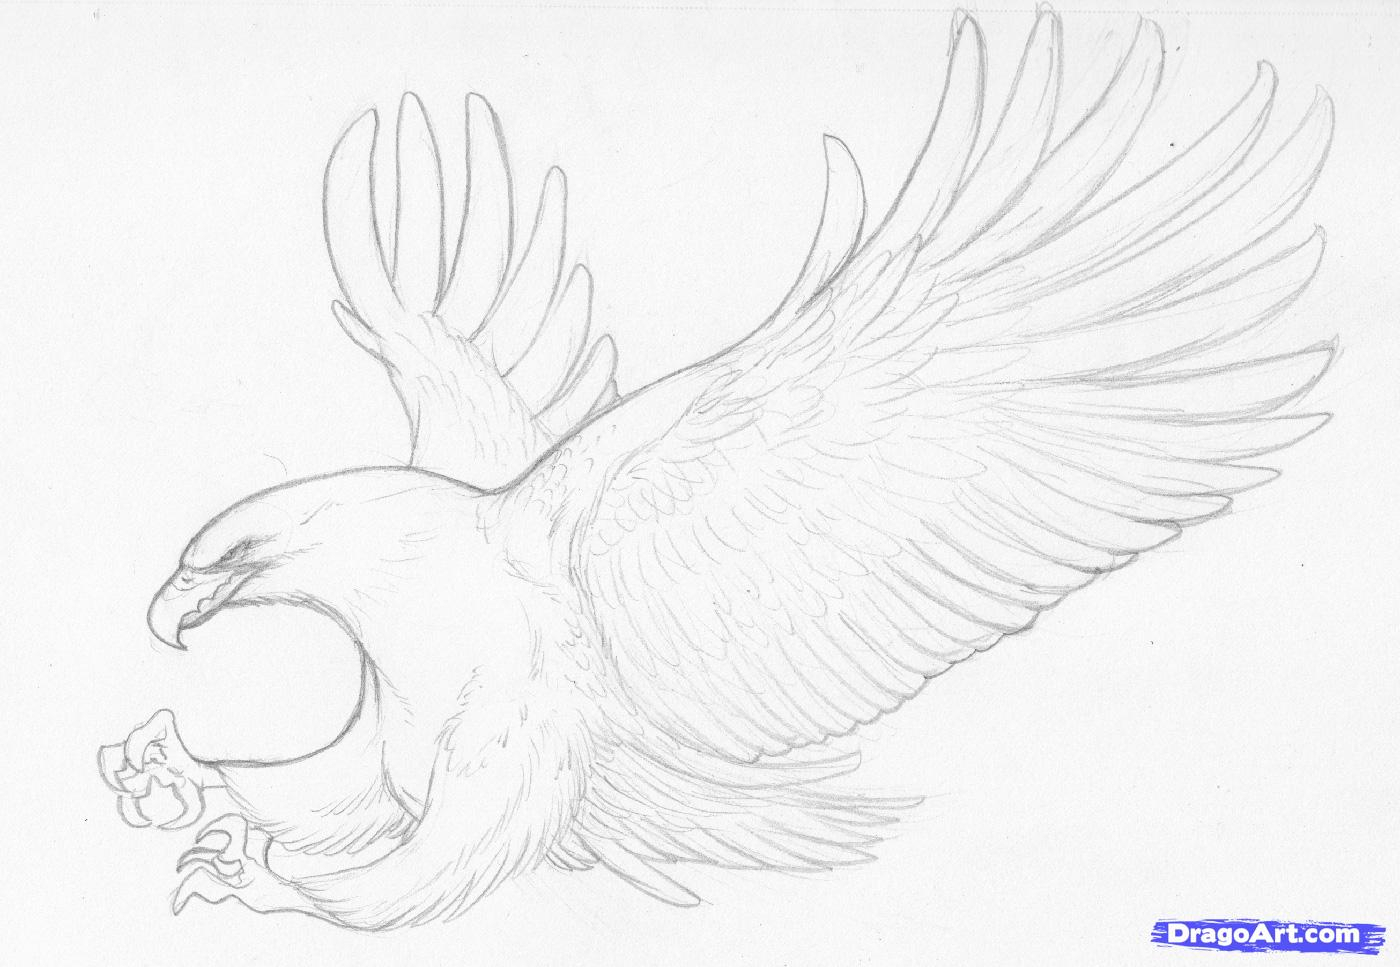 1400x967 Drawing In Pencil Sketch How To Sketch Eagle In Pencil, Draw